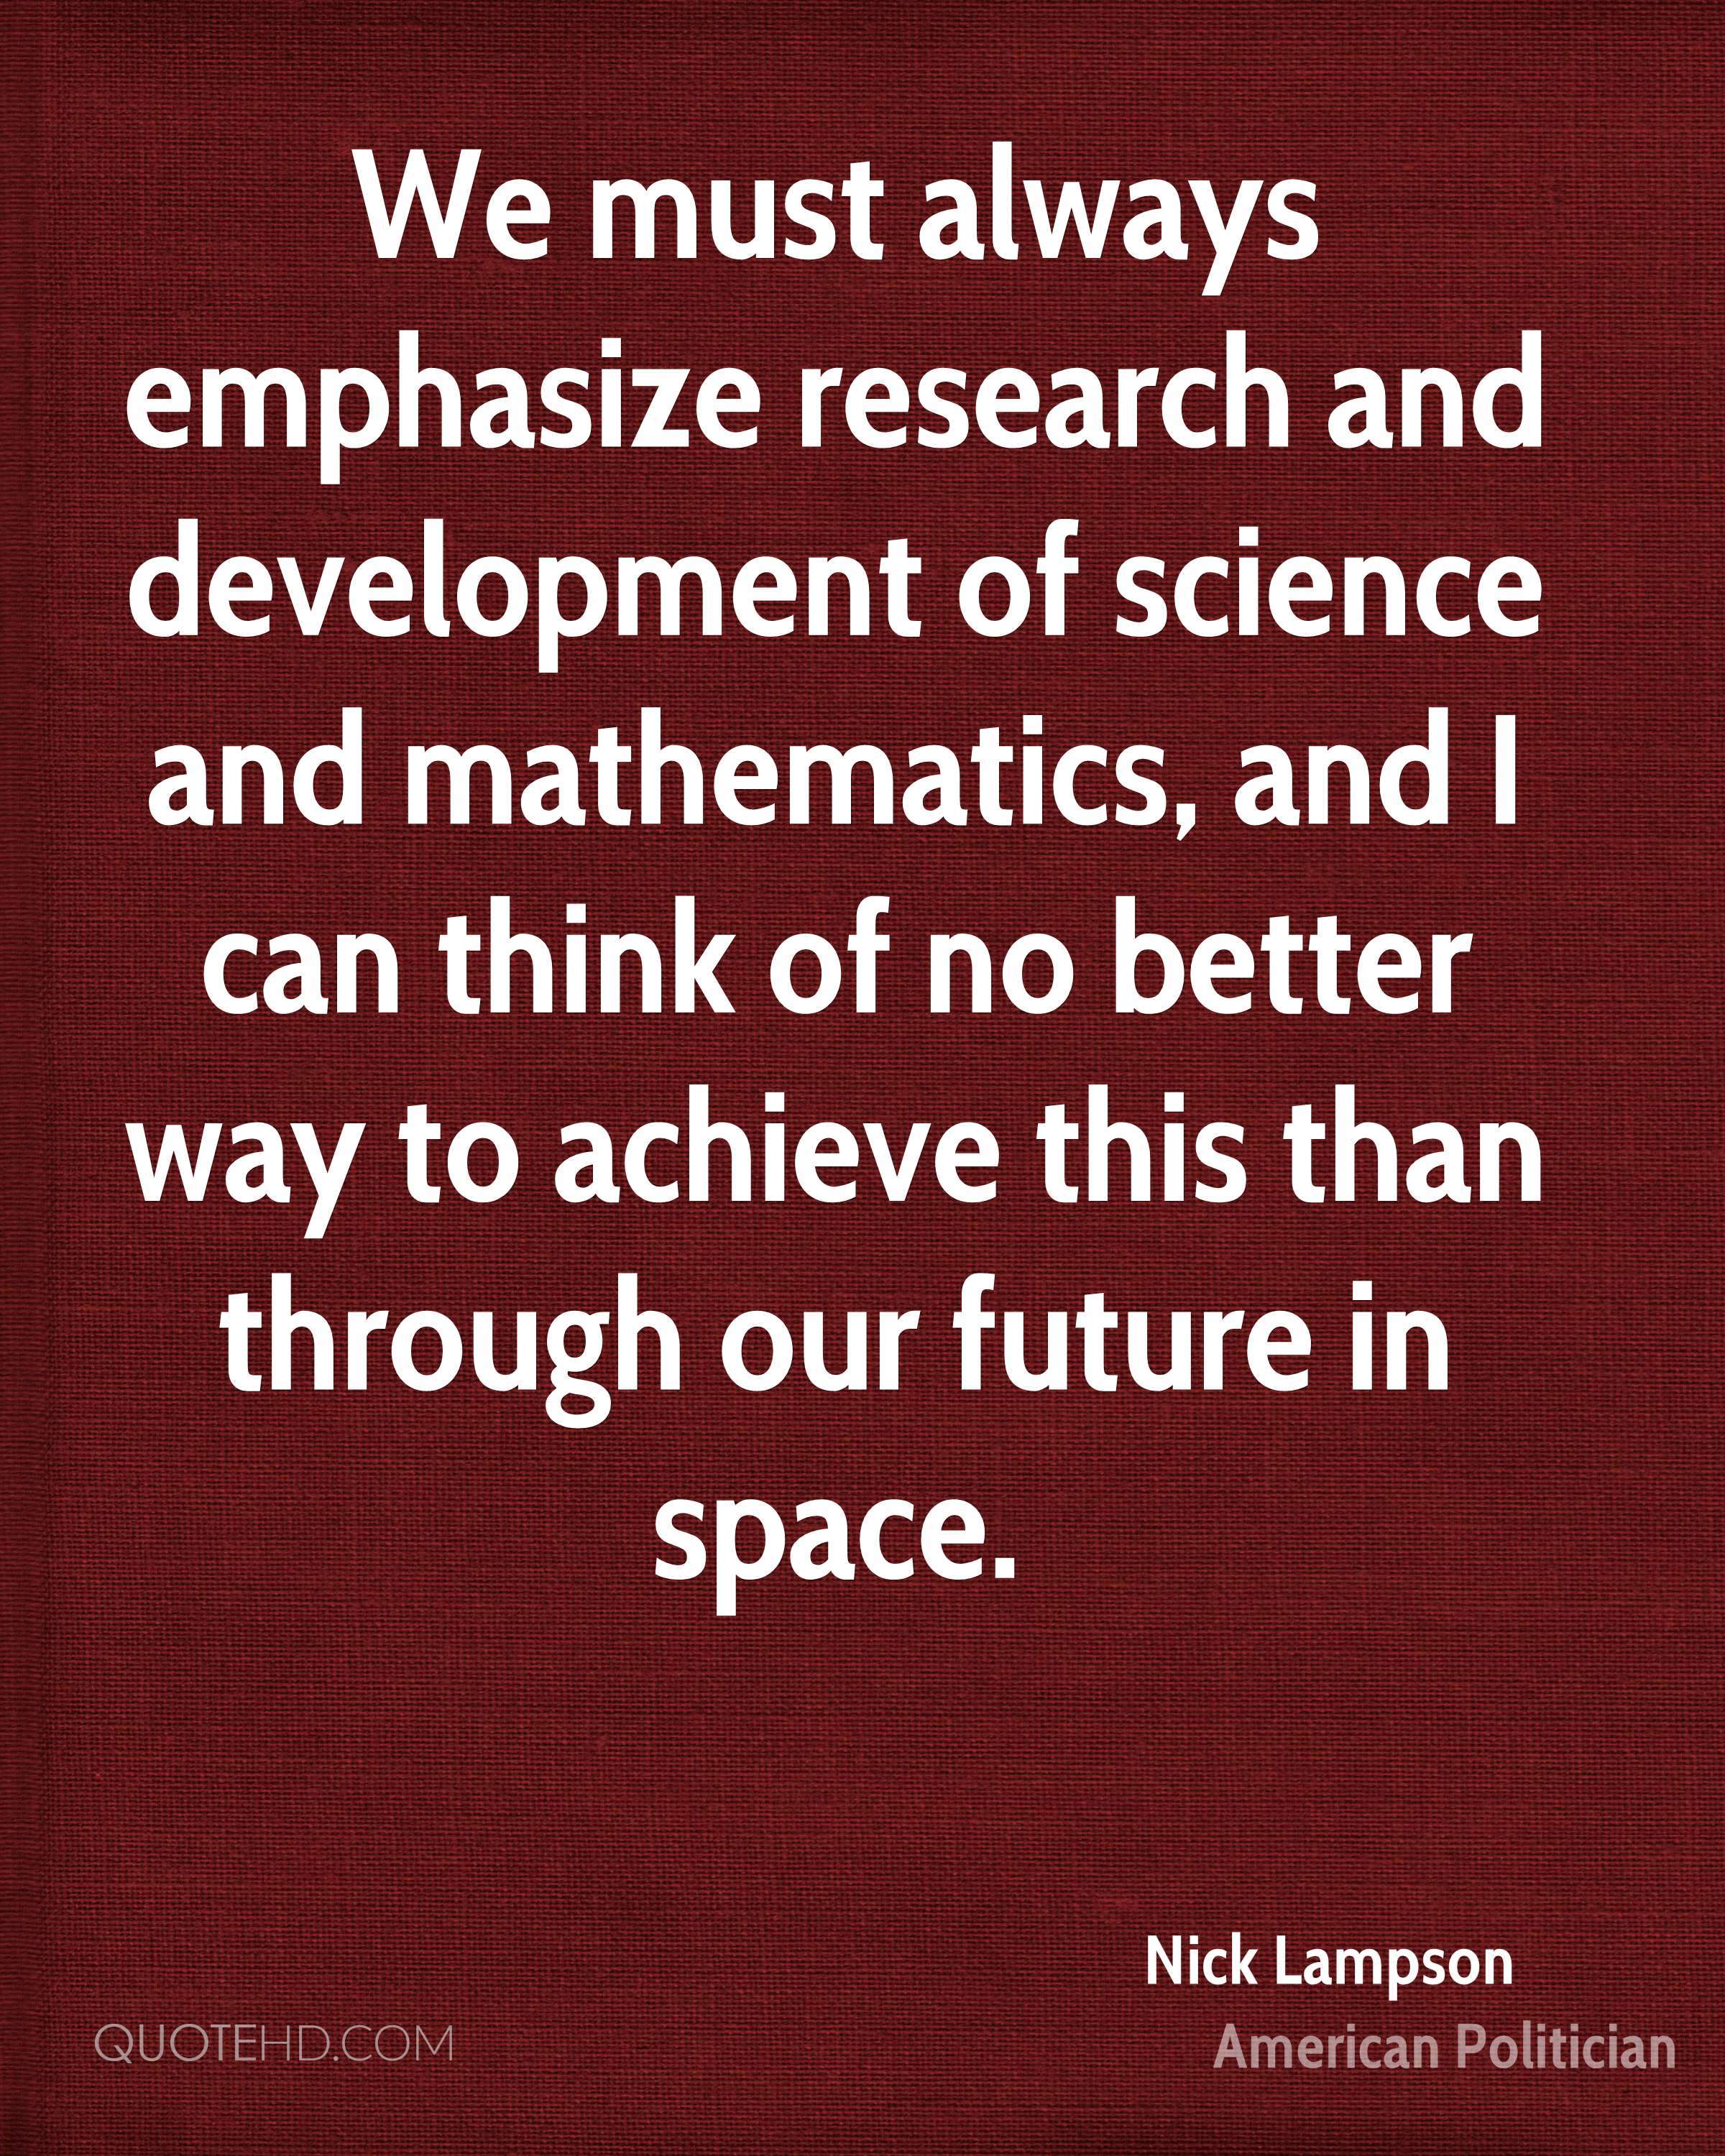 We must always emphasize research and development of science and mathematics, and I can think of no better way to achieve this than through our future in space.